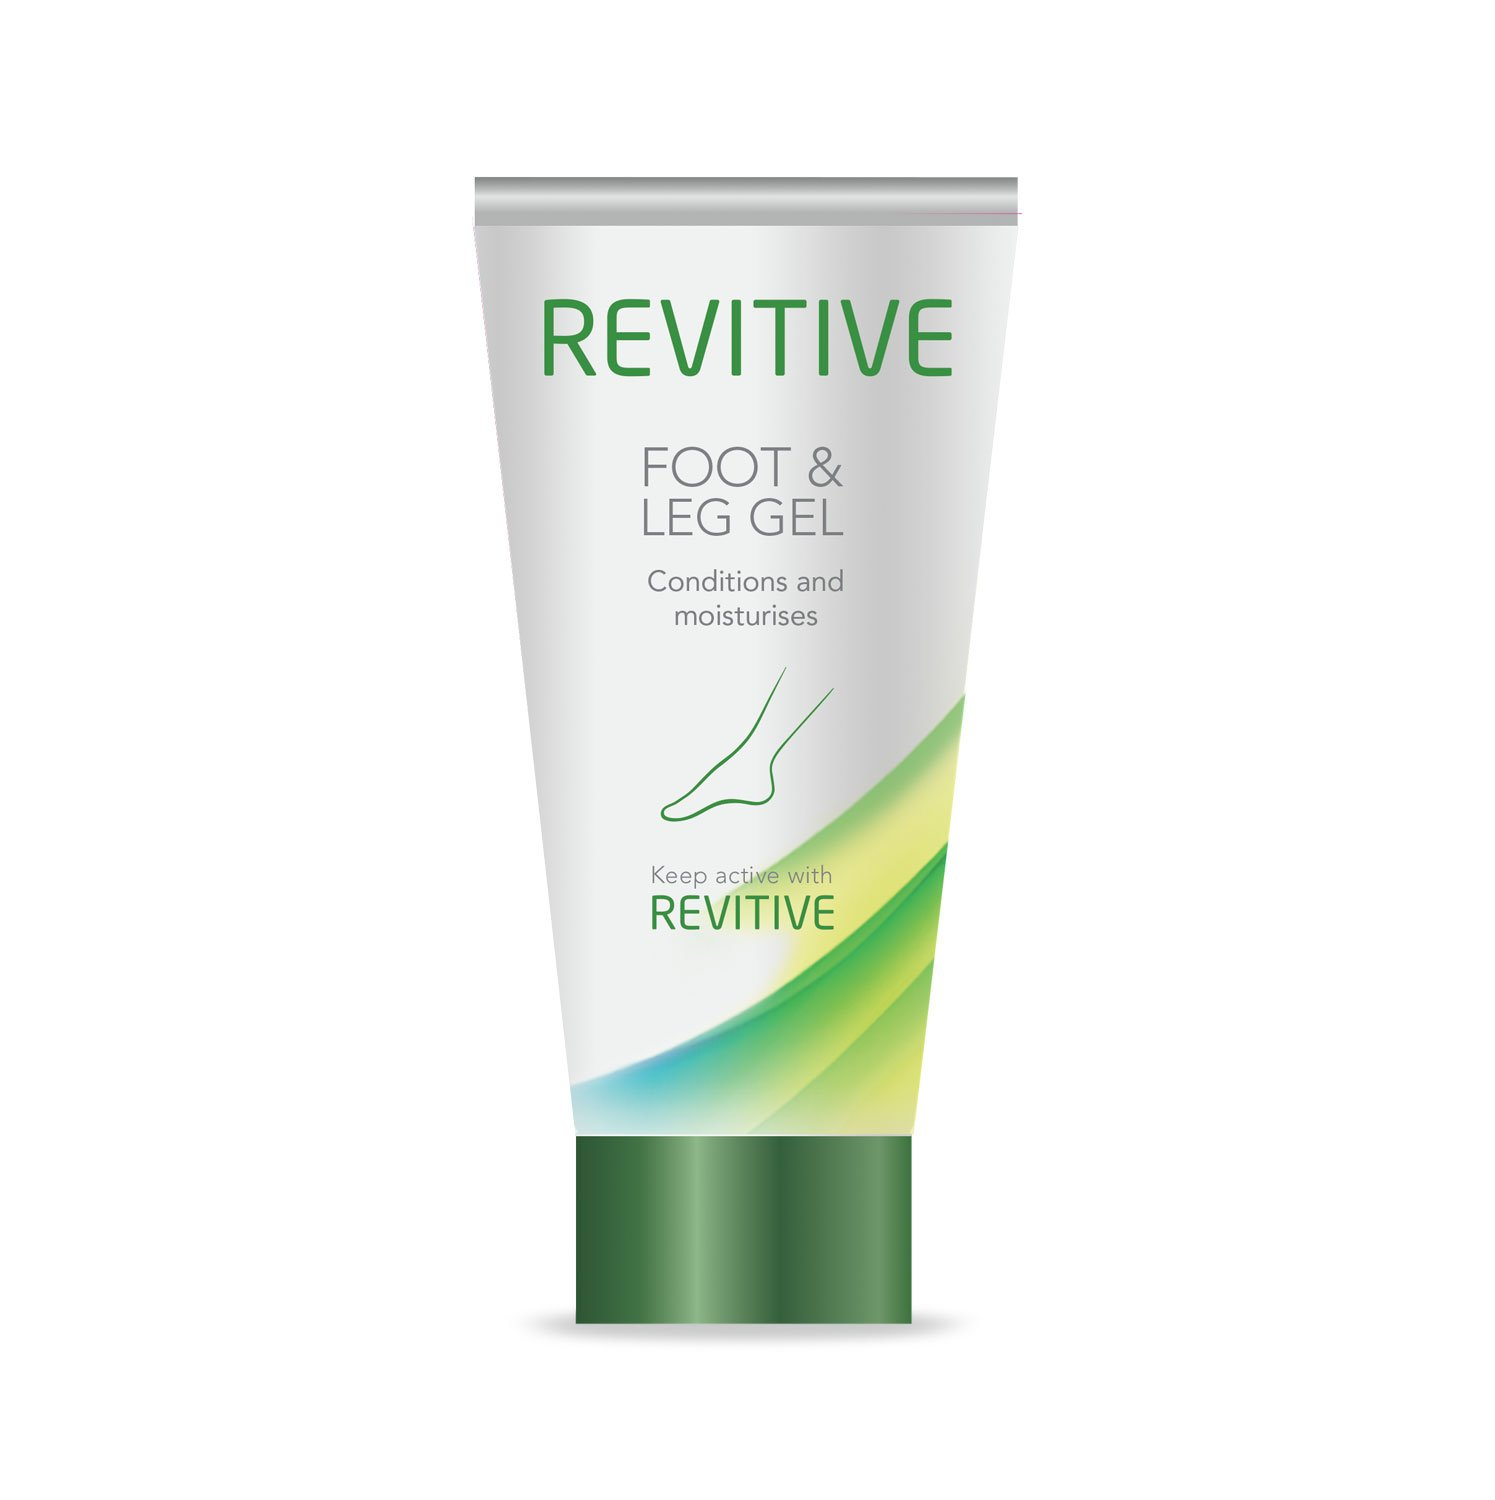 Revitive Foot & Leg Gel Actegy Ltd Revitive Foot and Leg gel